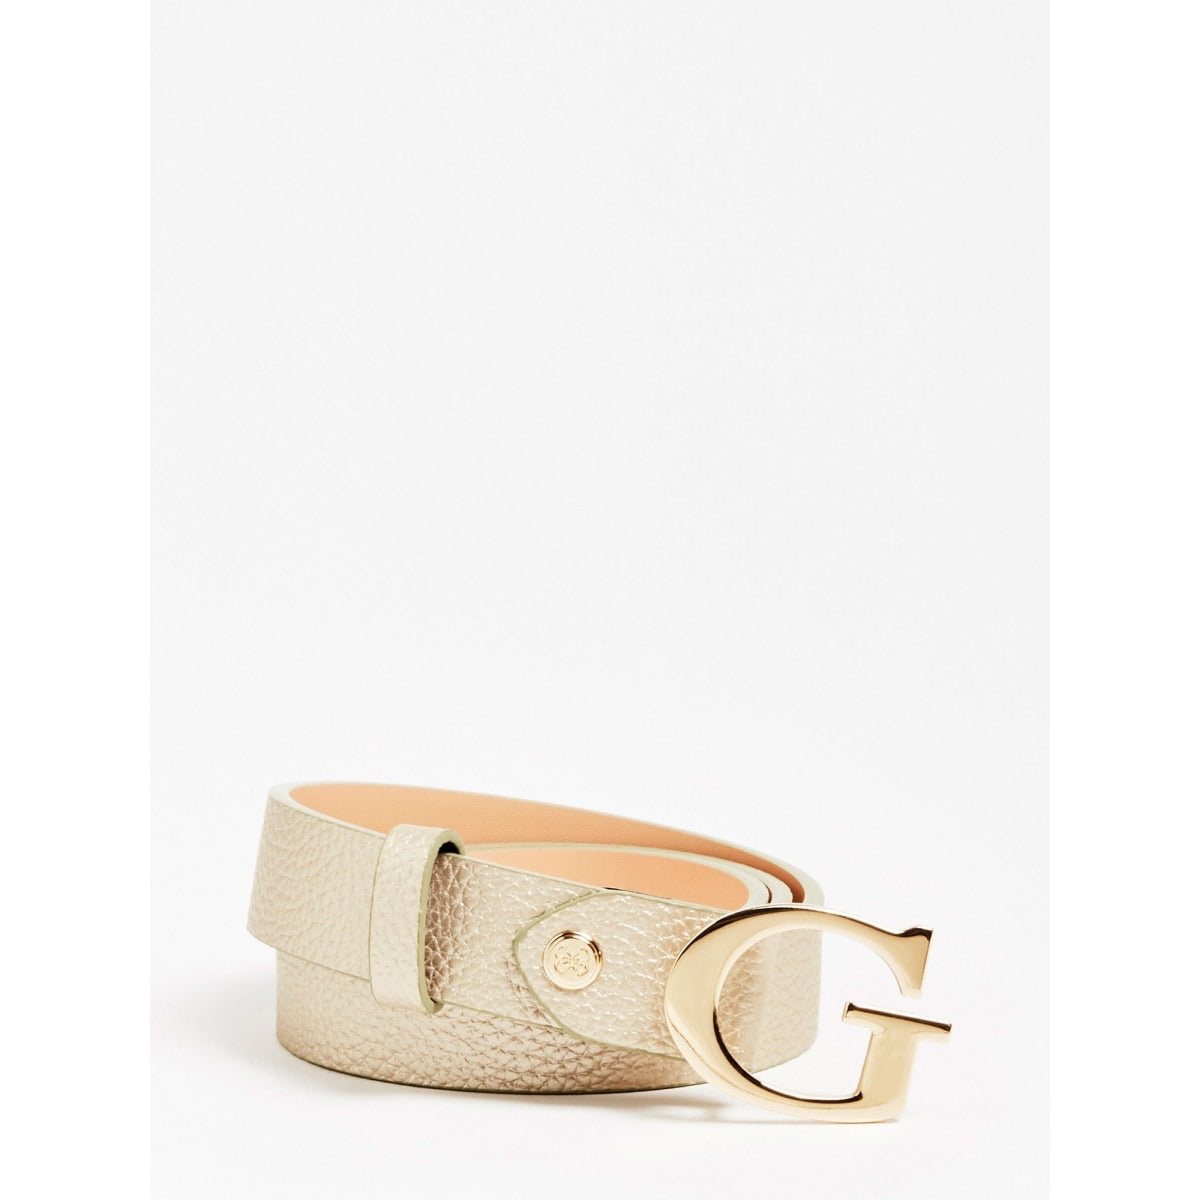 Ceinture irise BW7310 By GUESS